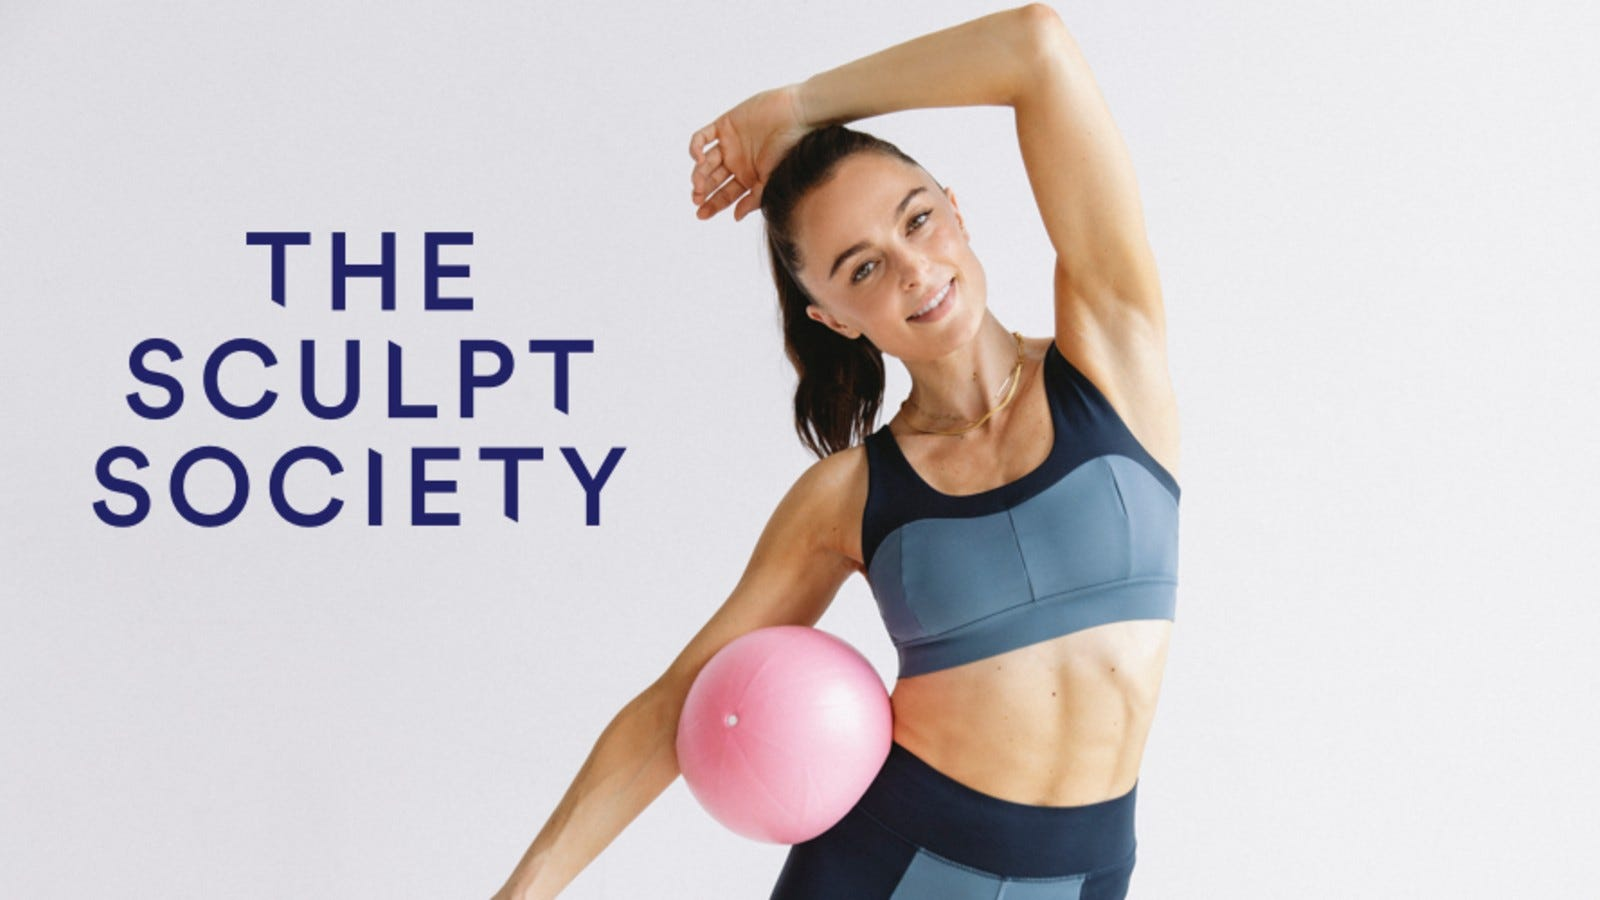 woman in sports bra holding a ball